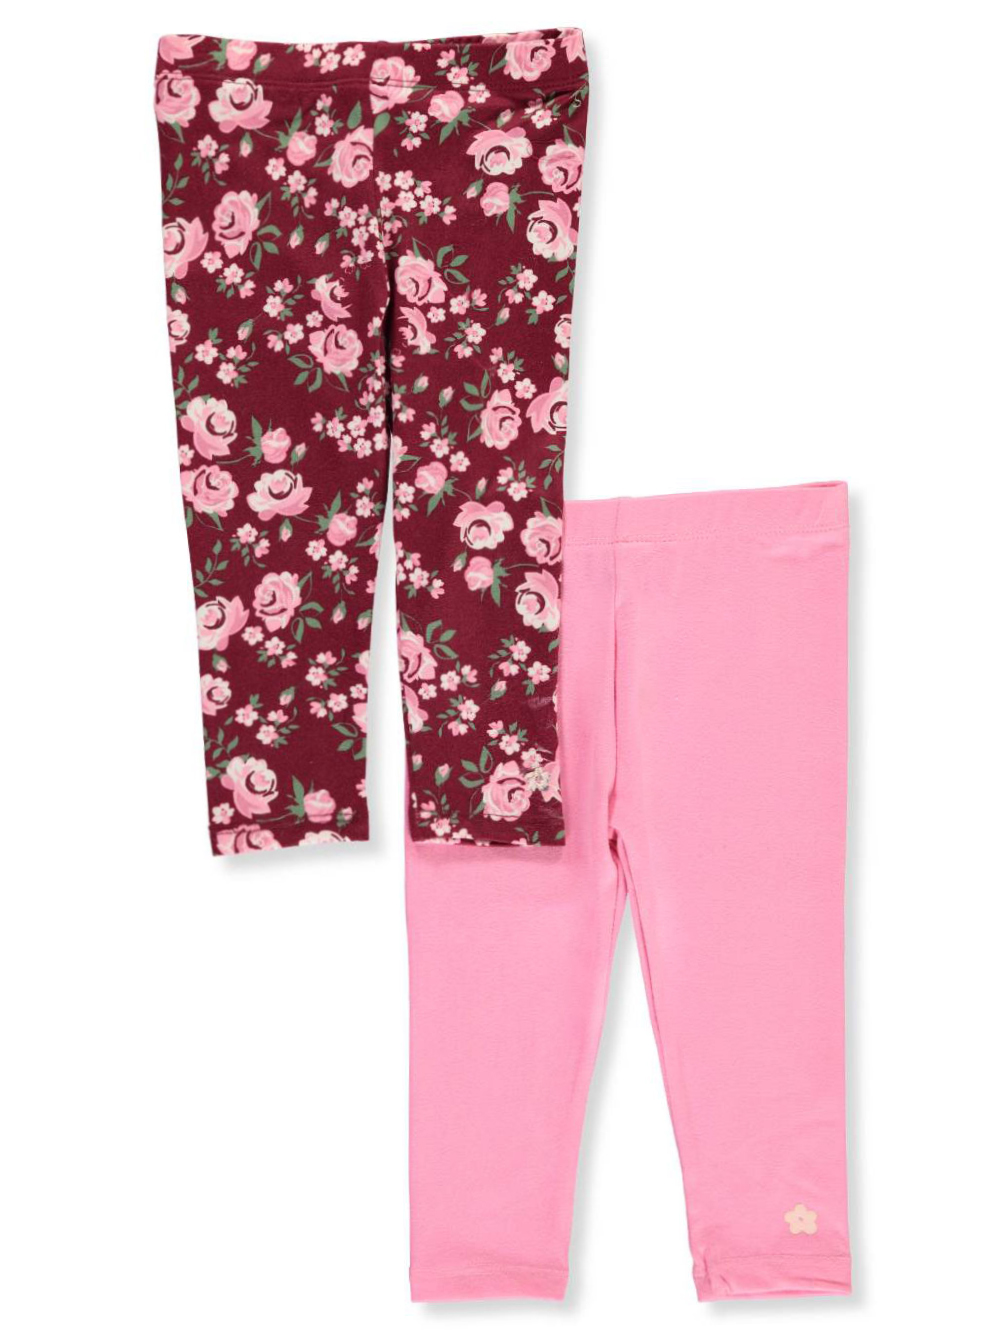 bbce41bdf Baby Girls' 2-Pack Leggings by Limited Too in Pink/multi from Cookie's Kids